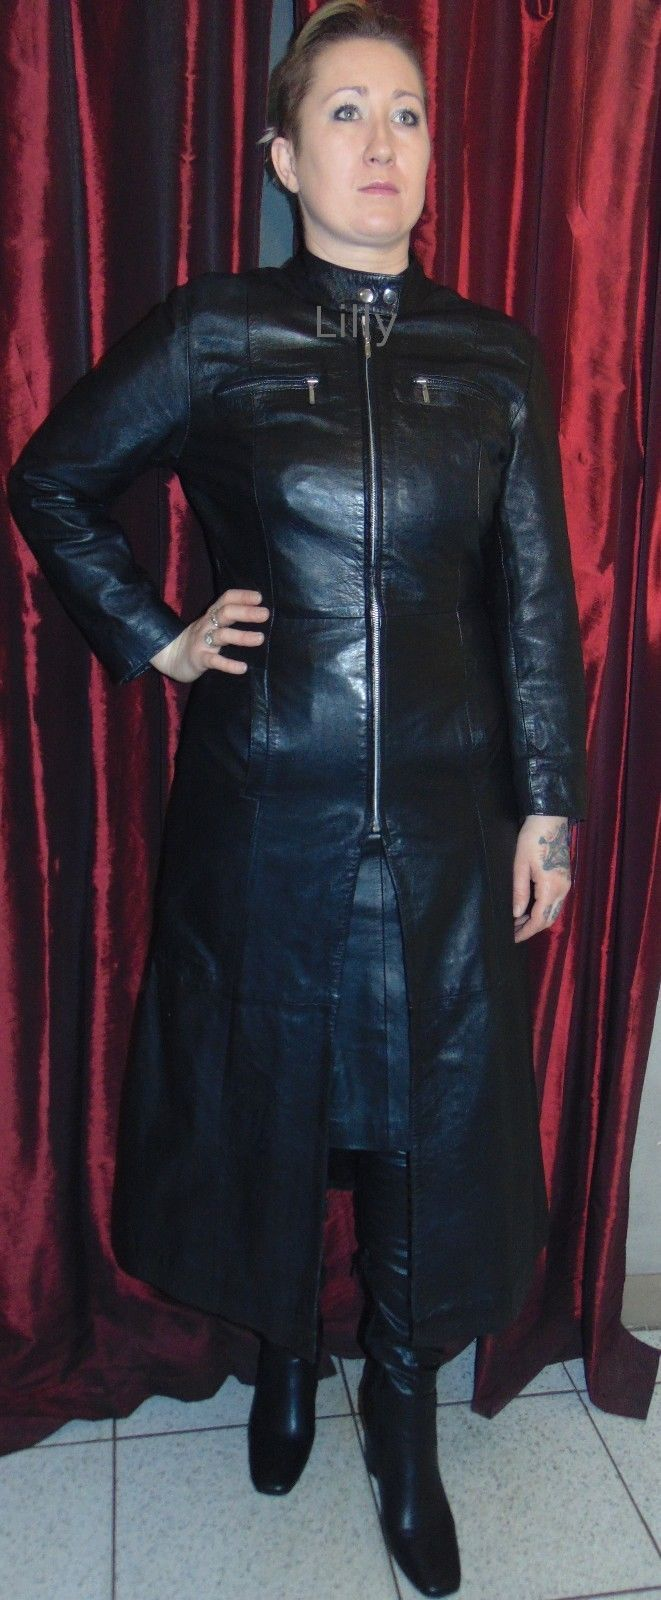 https://www.ebay.co.uk/itm/Ladies-Long-Zip-Black-MILAN-Leather-Cuir-Cuero-Coat-Size-12-UK-10-USA-38-EUR/112695711697?hash=item1a3d3017d1:g:Zz8AAOSwsFpaNoMn